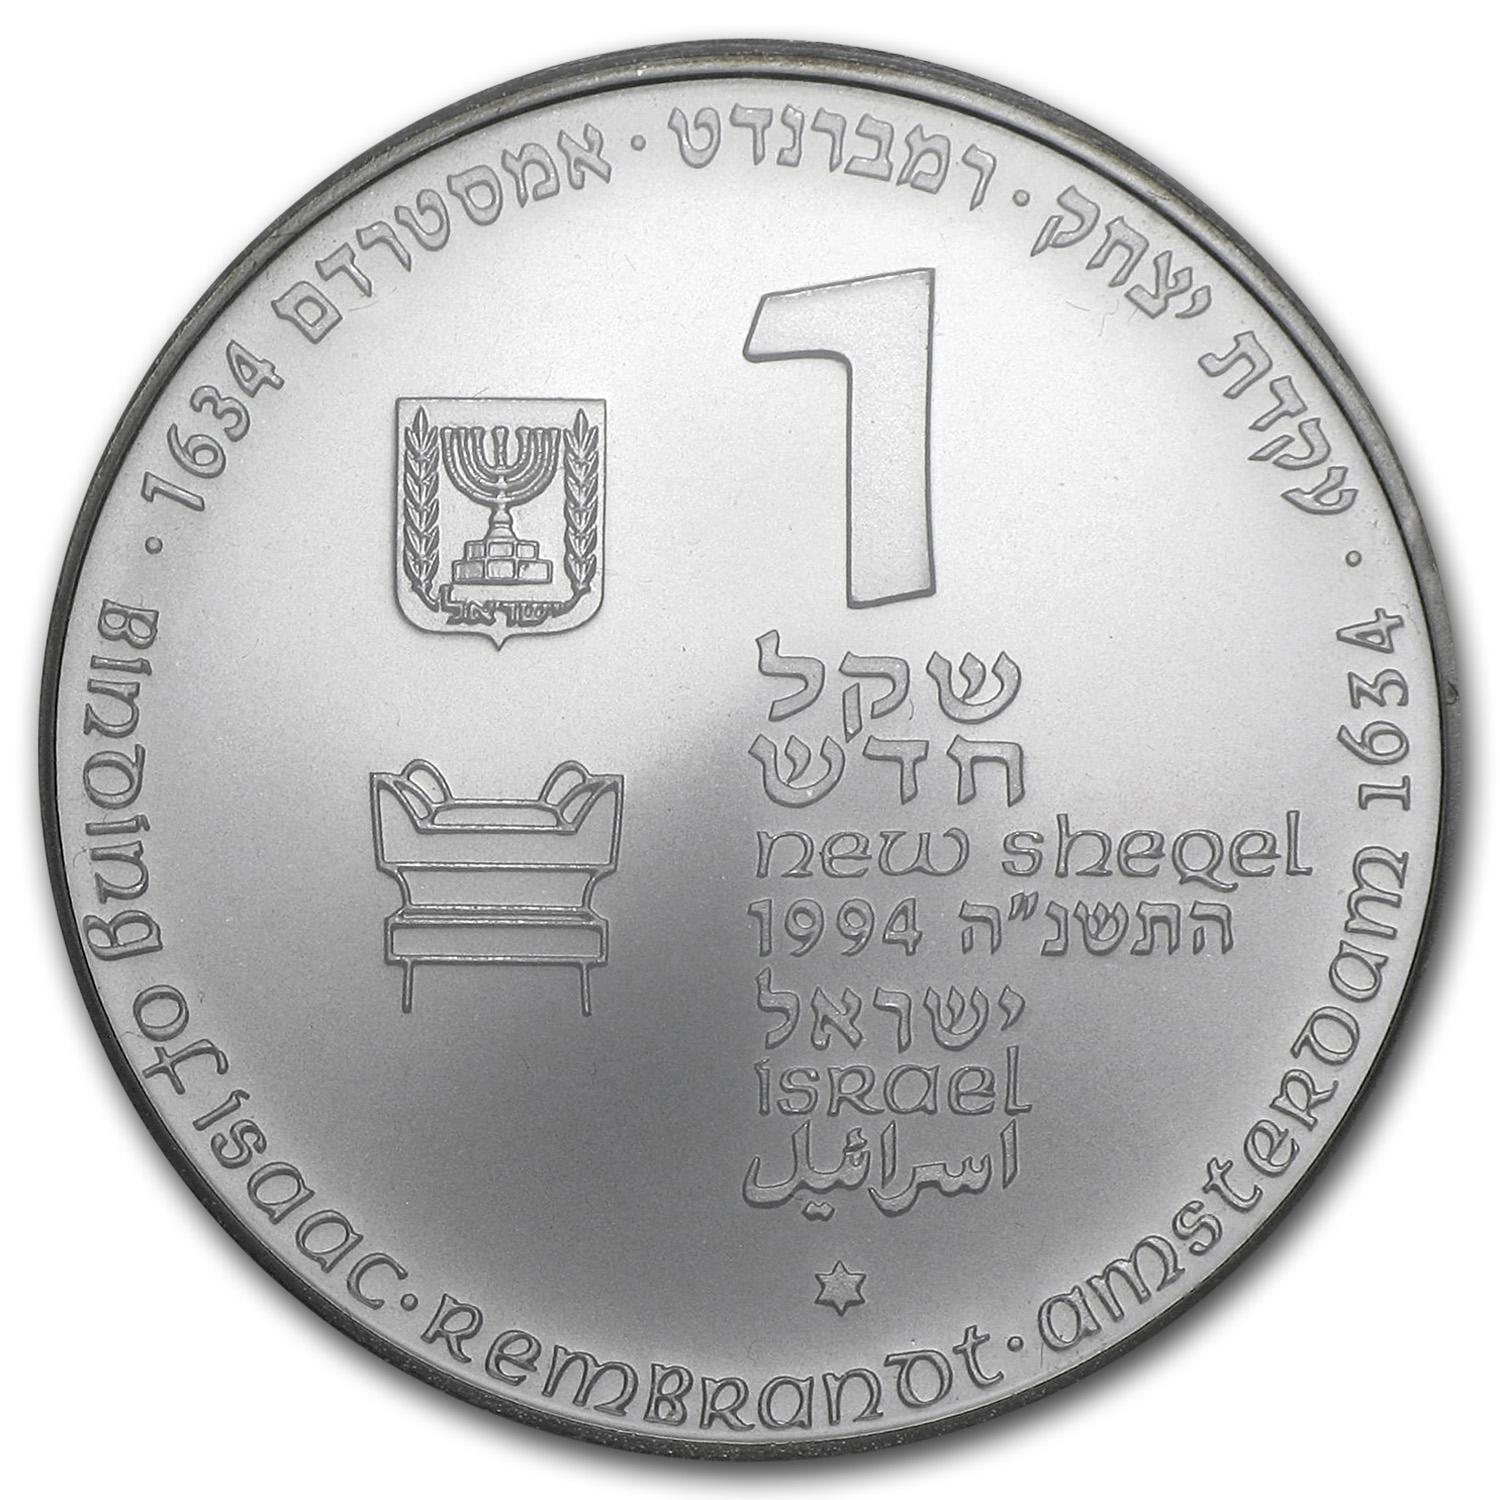 1994 Israel Silver 1 NIS Binding of Isaac Proof-like